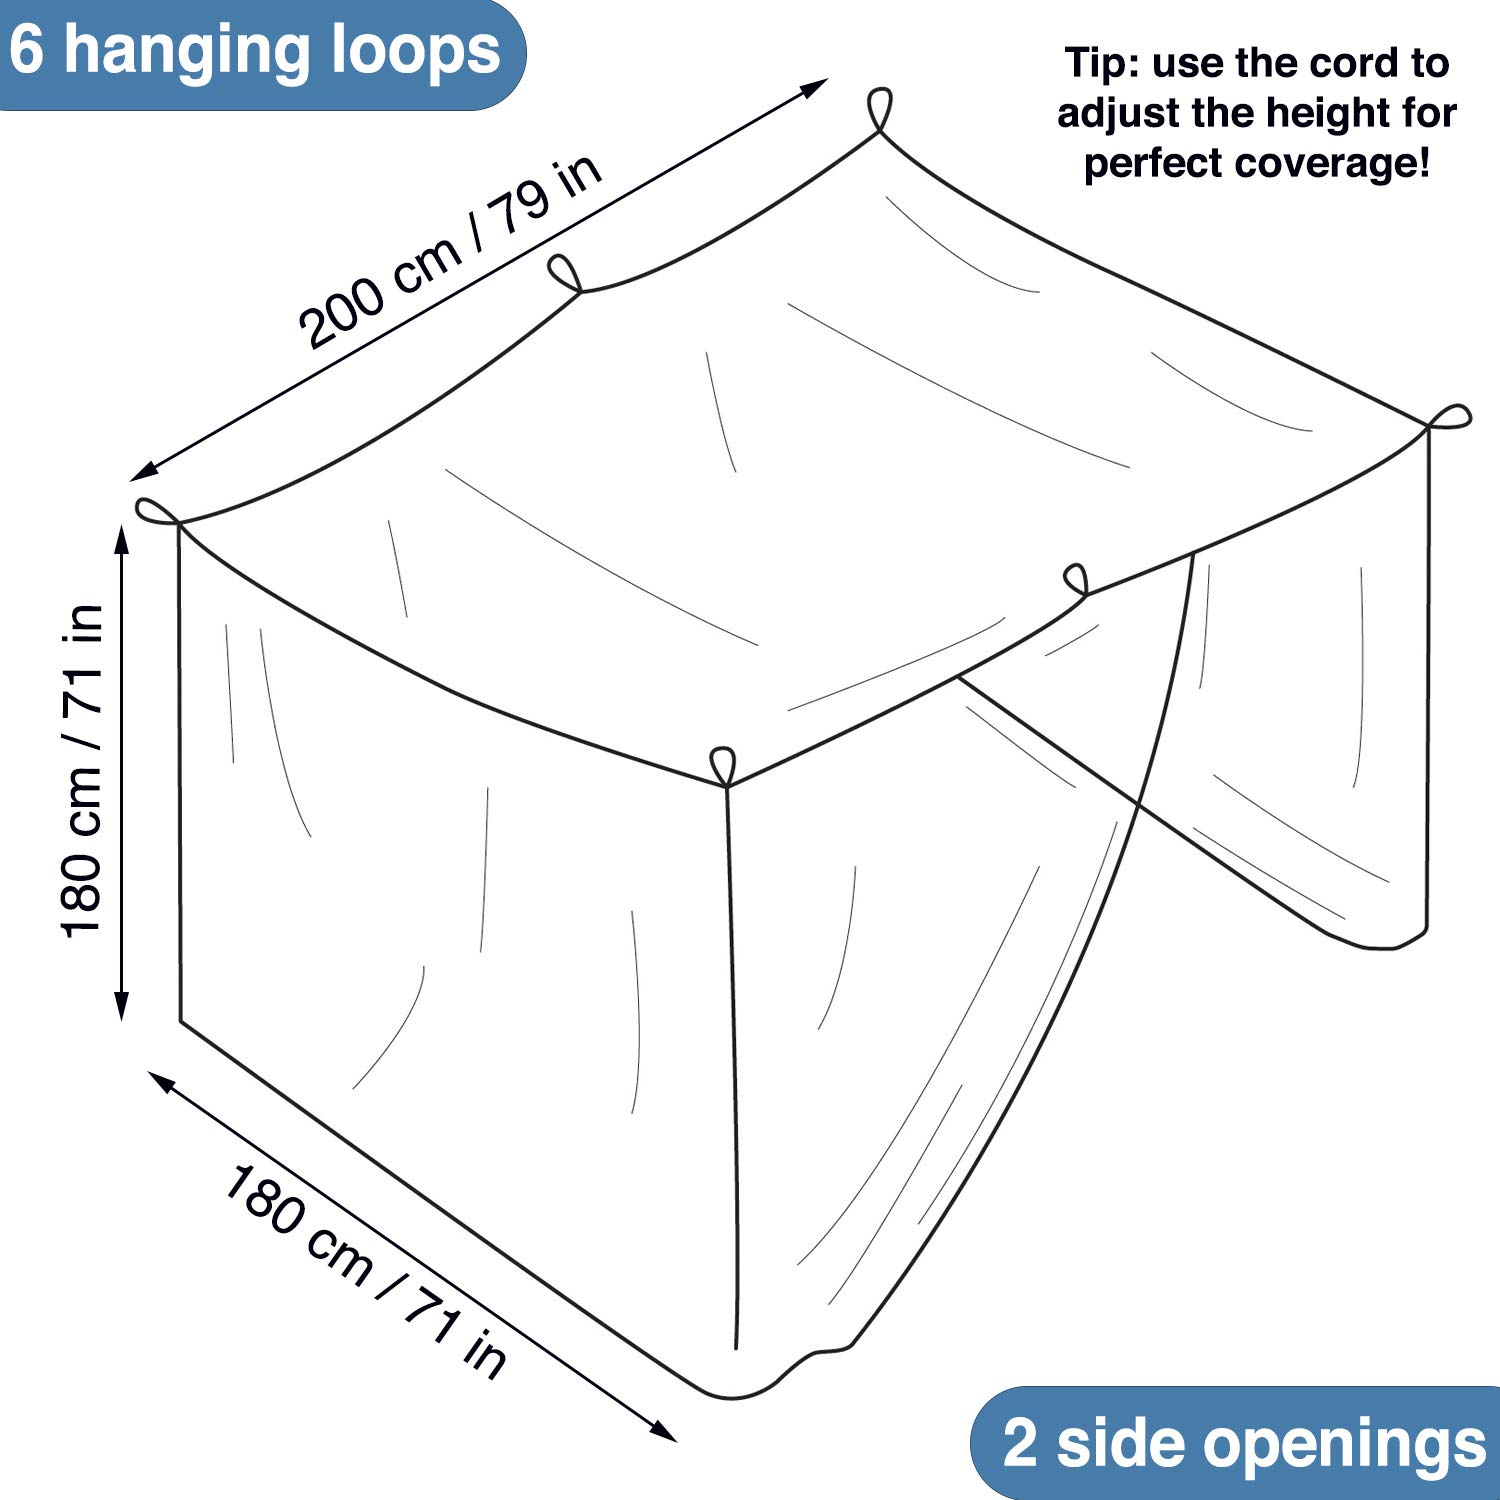 Universal Backpackers Mosquito Net for Double Bed Bed Canopy Hanging Kit /& Carrying Bag Included 6 Hanging Loops /& 2 Side Openings Decorative Rectangular Shape for Home /& Travel